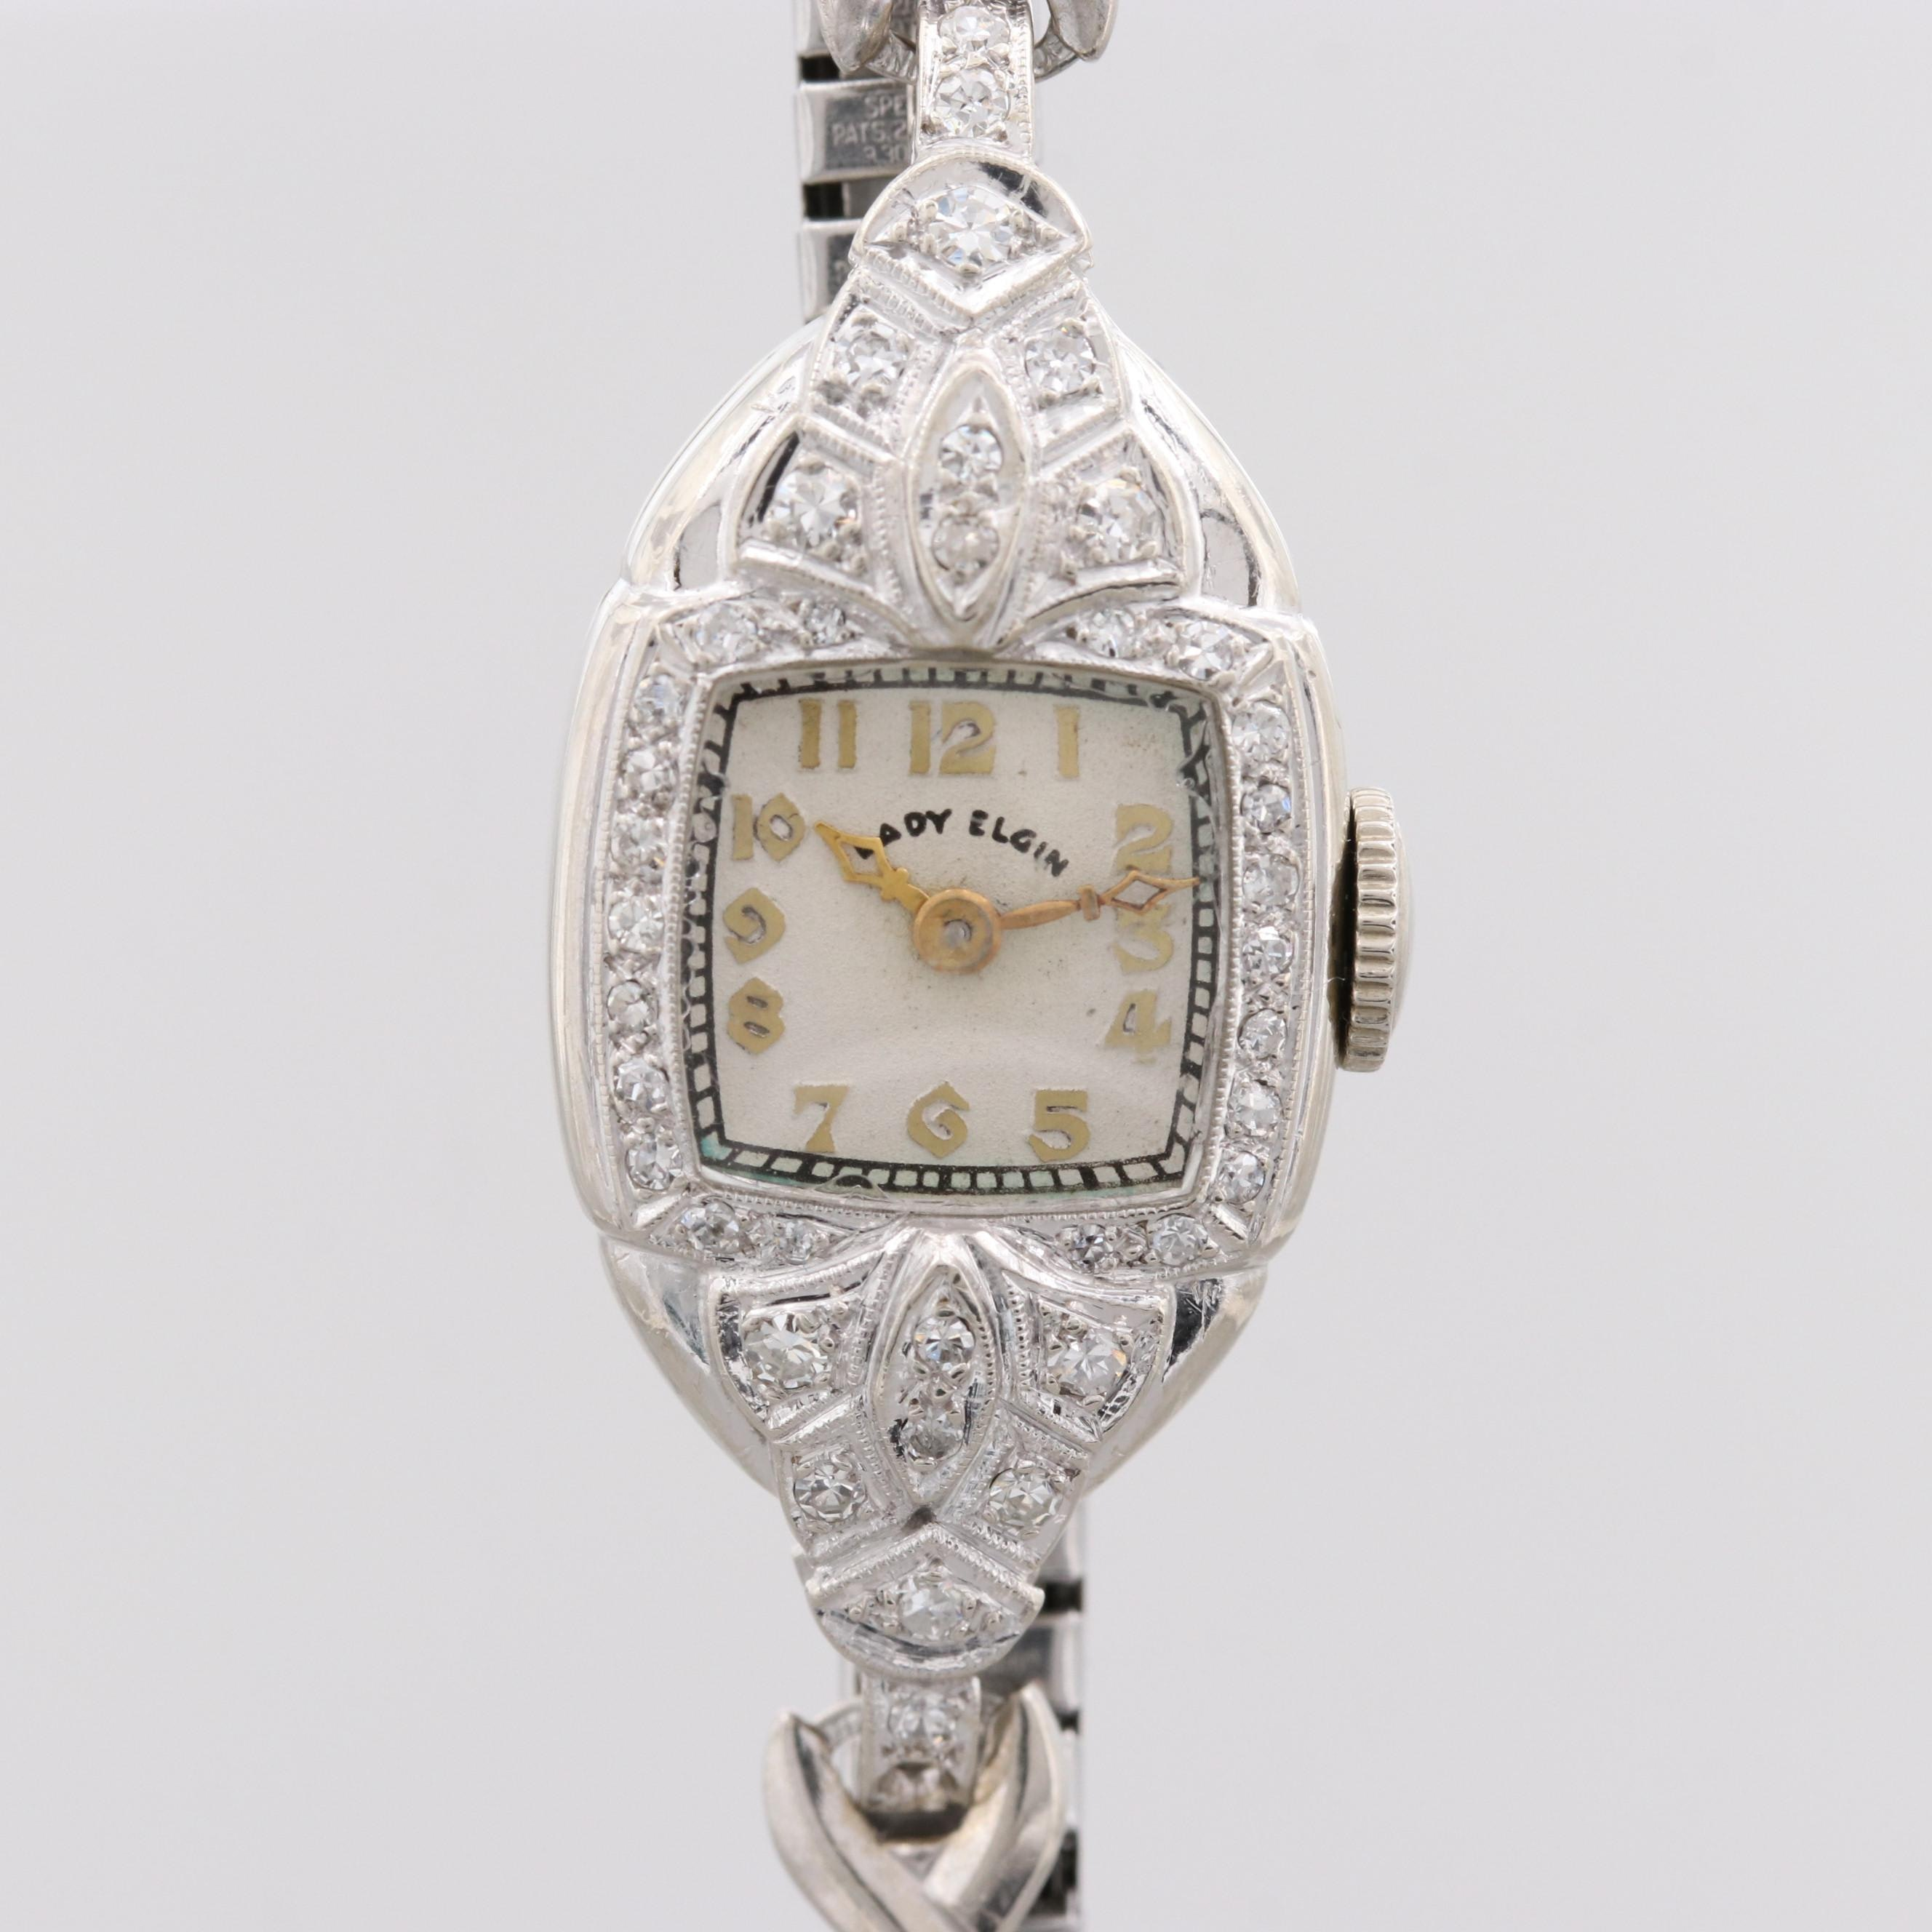 Lady Elgin Stainless Steel and 14K White Gold Wristwatch with Diamond Bezel